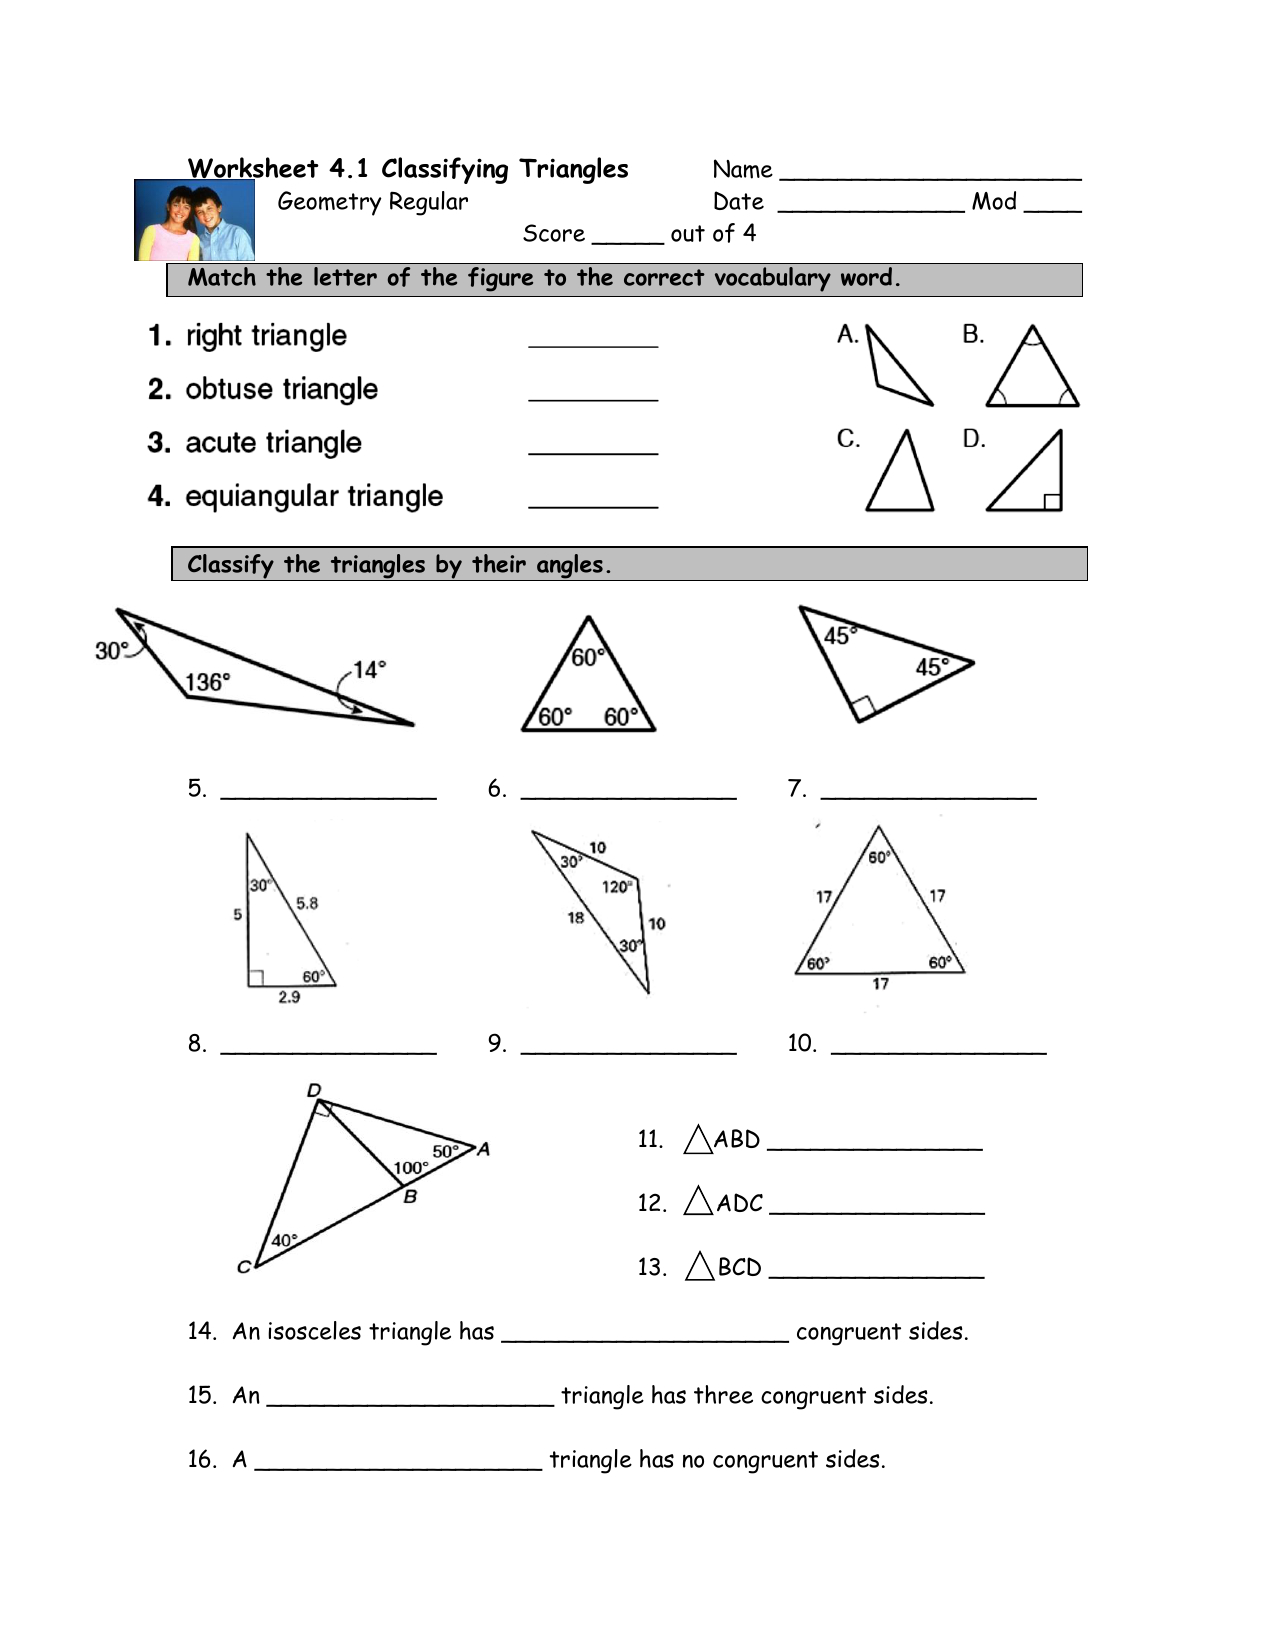 Classifying Triangles Worksheet With Answer Key